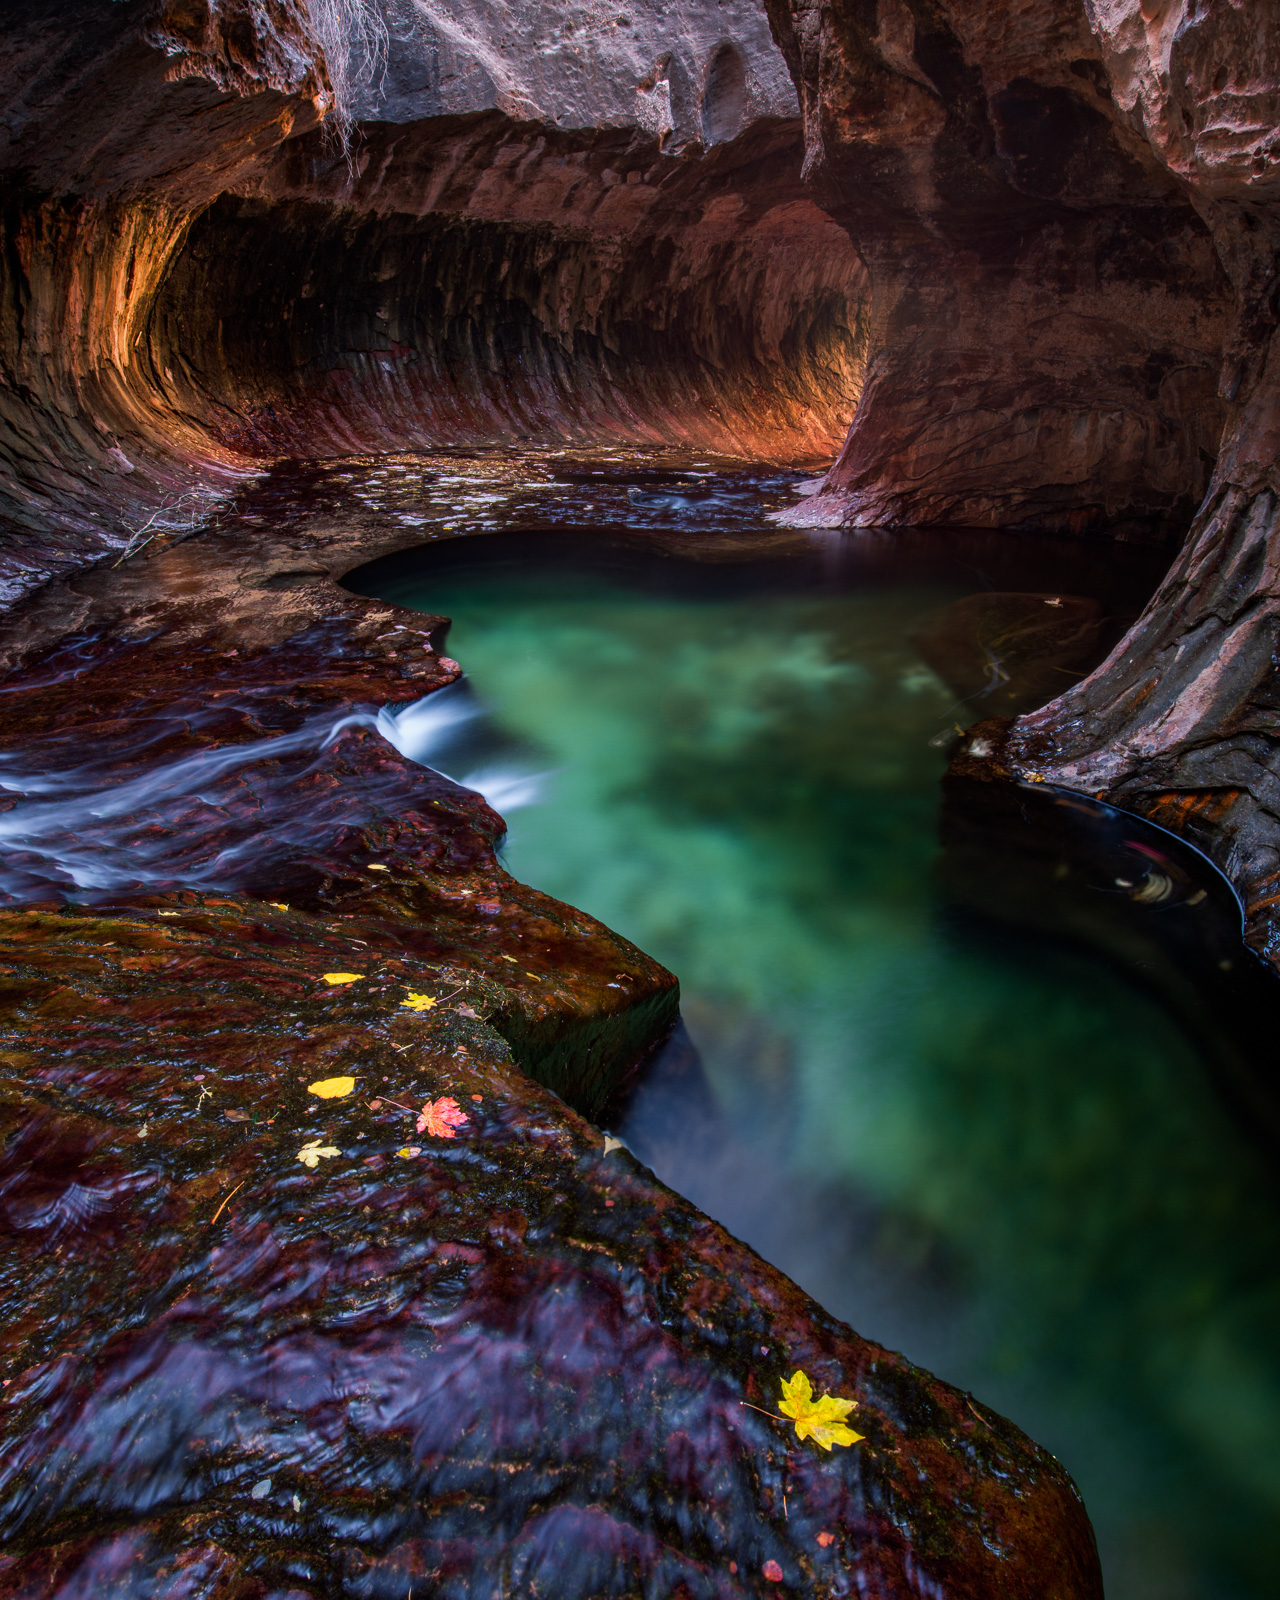 Autumn in the Subway, a remote slot canyon in Zion National Park.